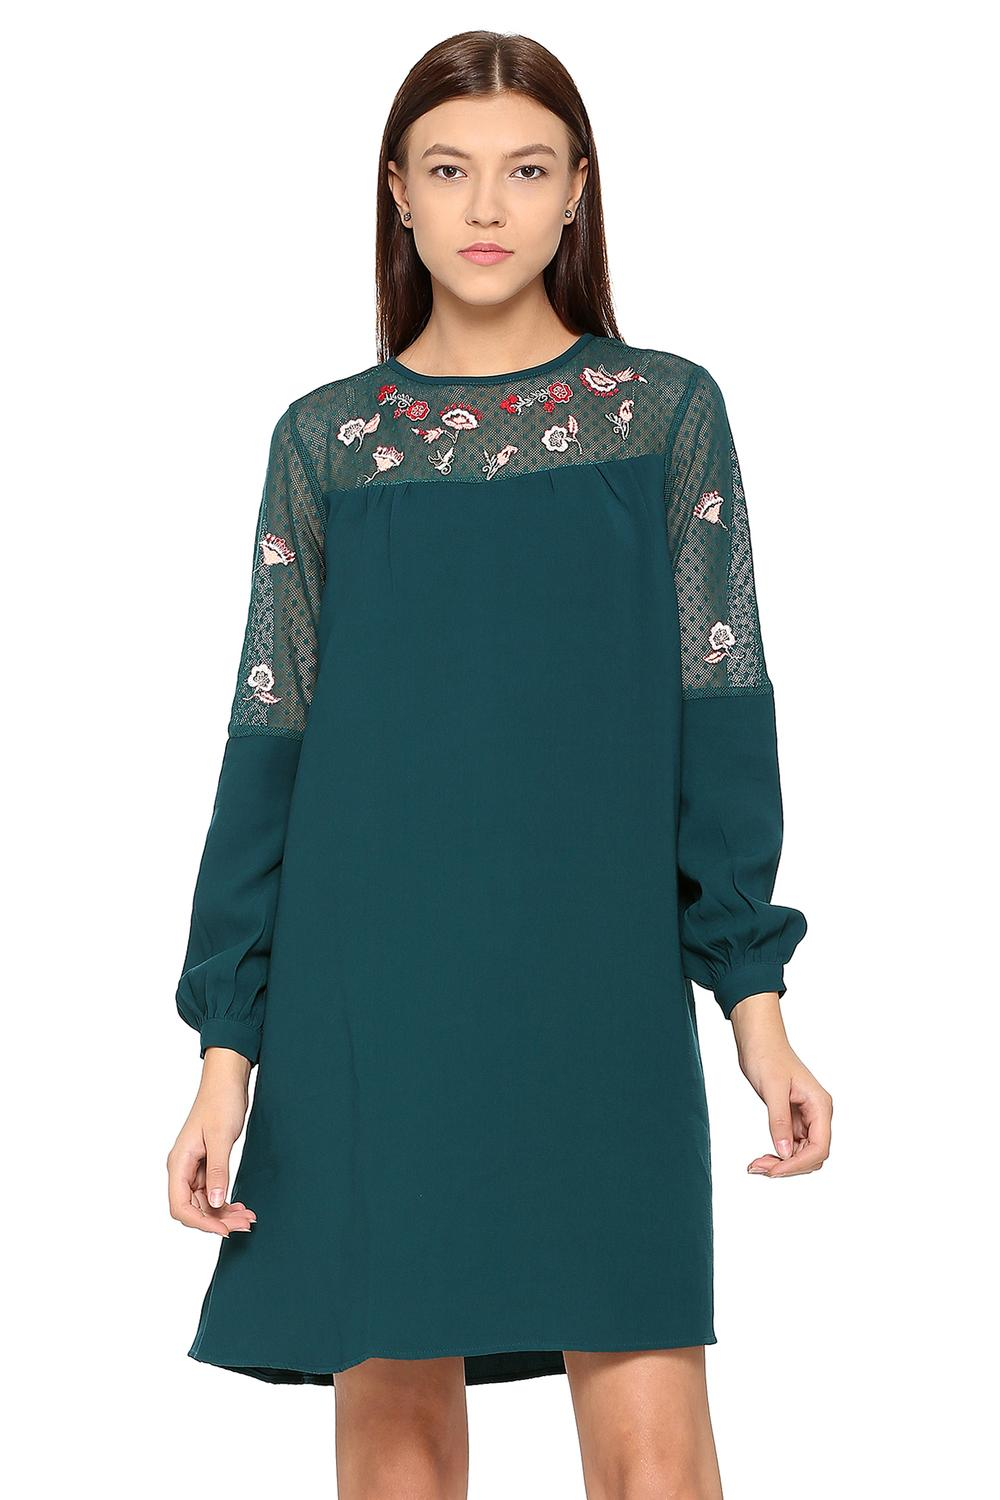 8225a8876a22 Solly Dresses, Allen Solly Blue Dress for Women at Allensolly.com